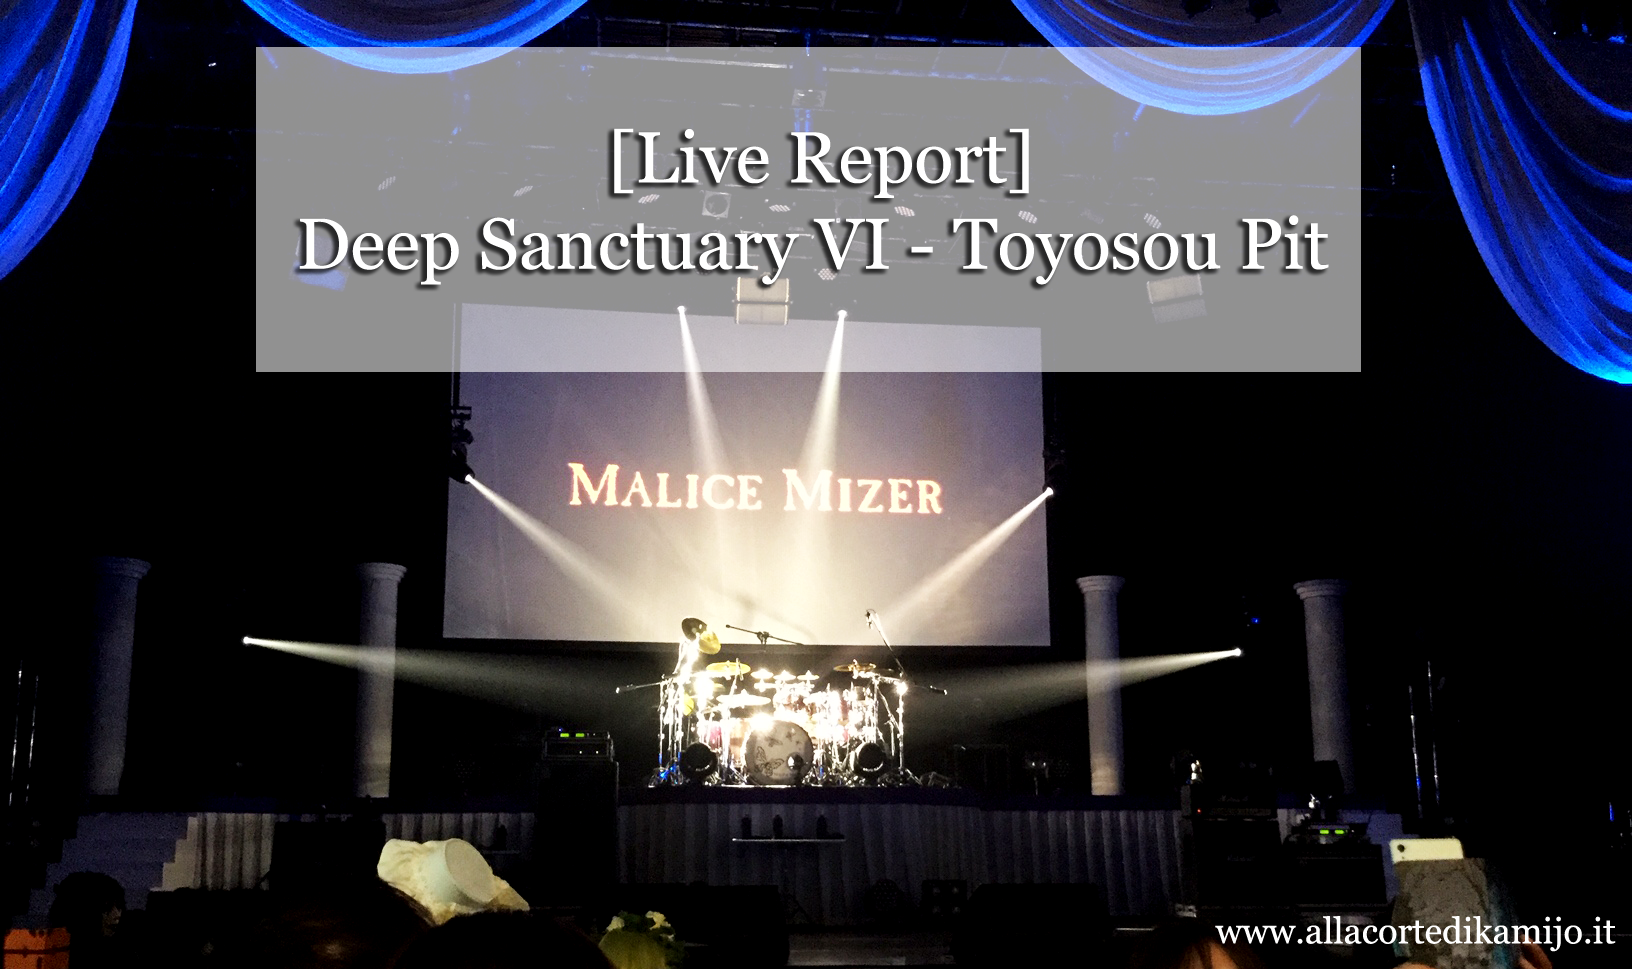 [Live Report] Deep Sanctuary VI